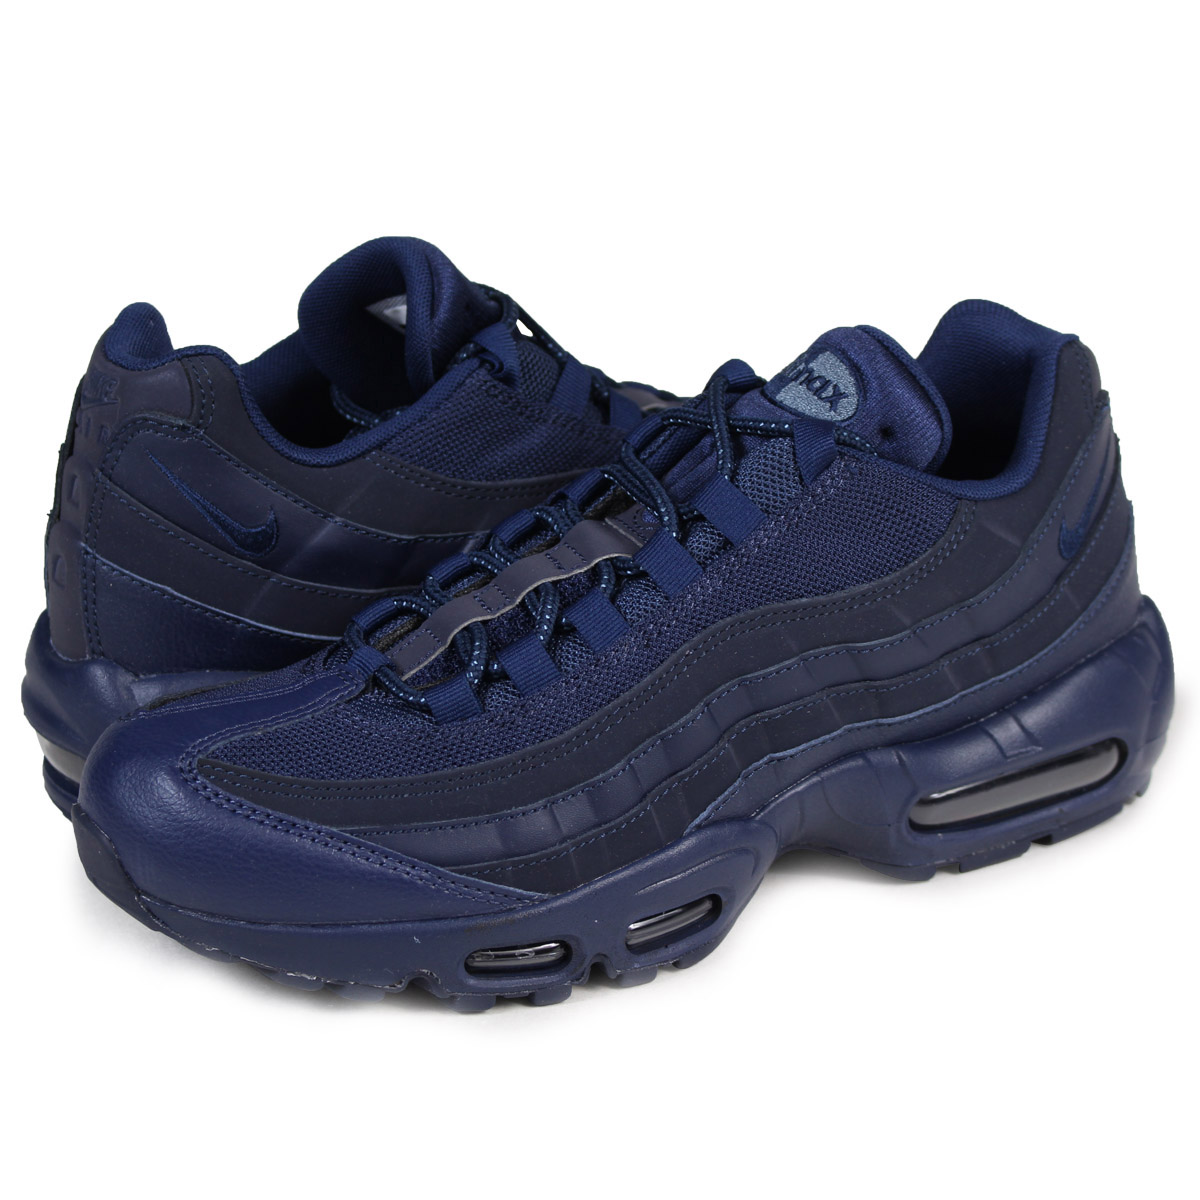 a1b9b64f1e ... air max 95 essential october red gold navy blue womens mens casual  trainers running shoes nike011426 9196c 1ee8b; france nike 749766 407 a  4ffd1 3962e